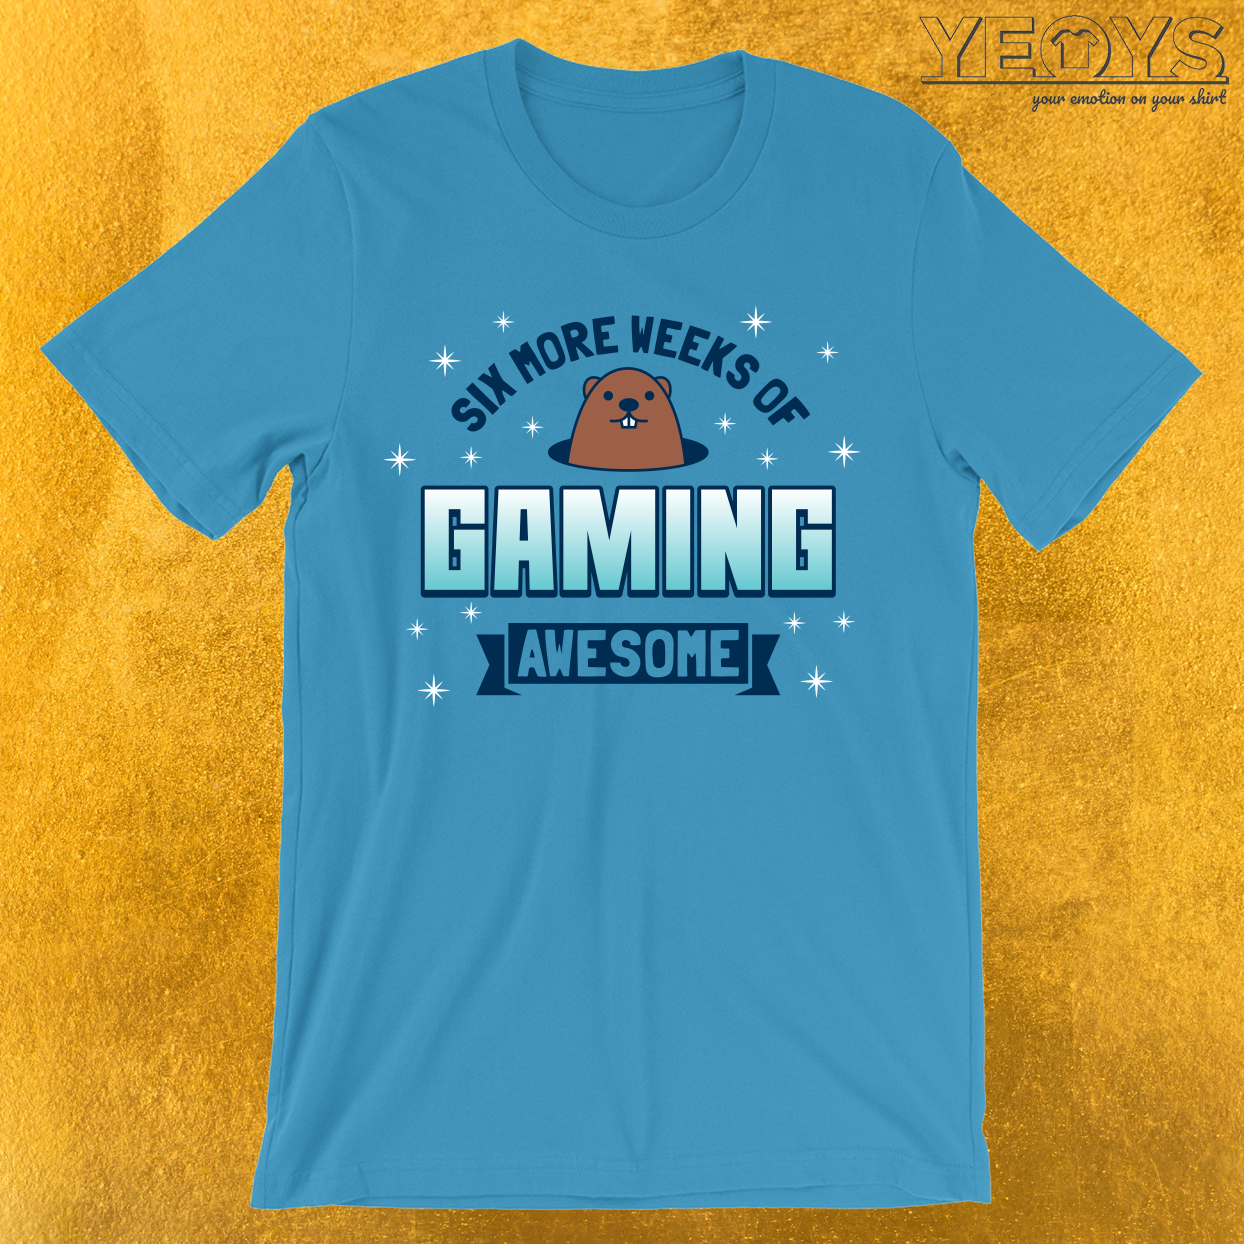 Six More Weeks Of Gaming T-Shirt